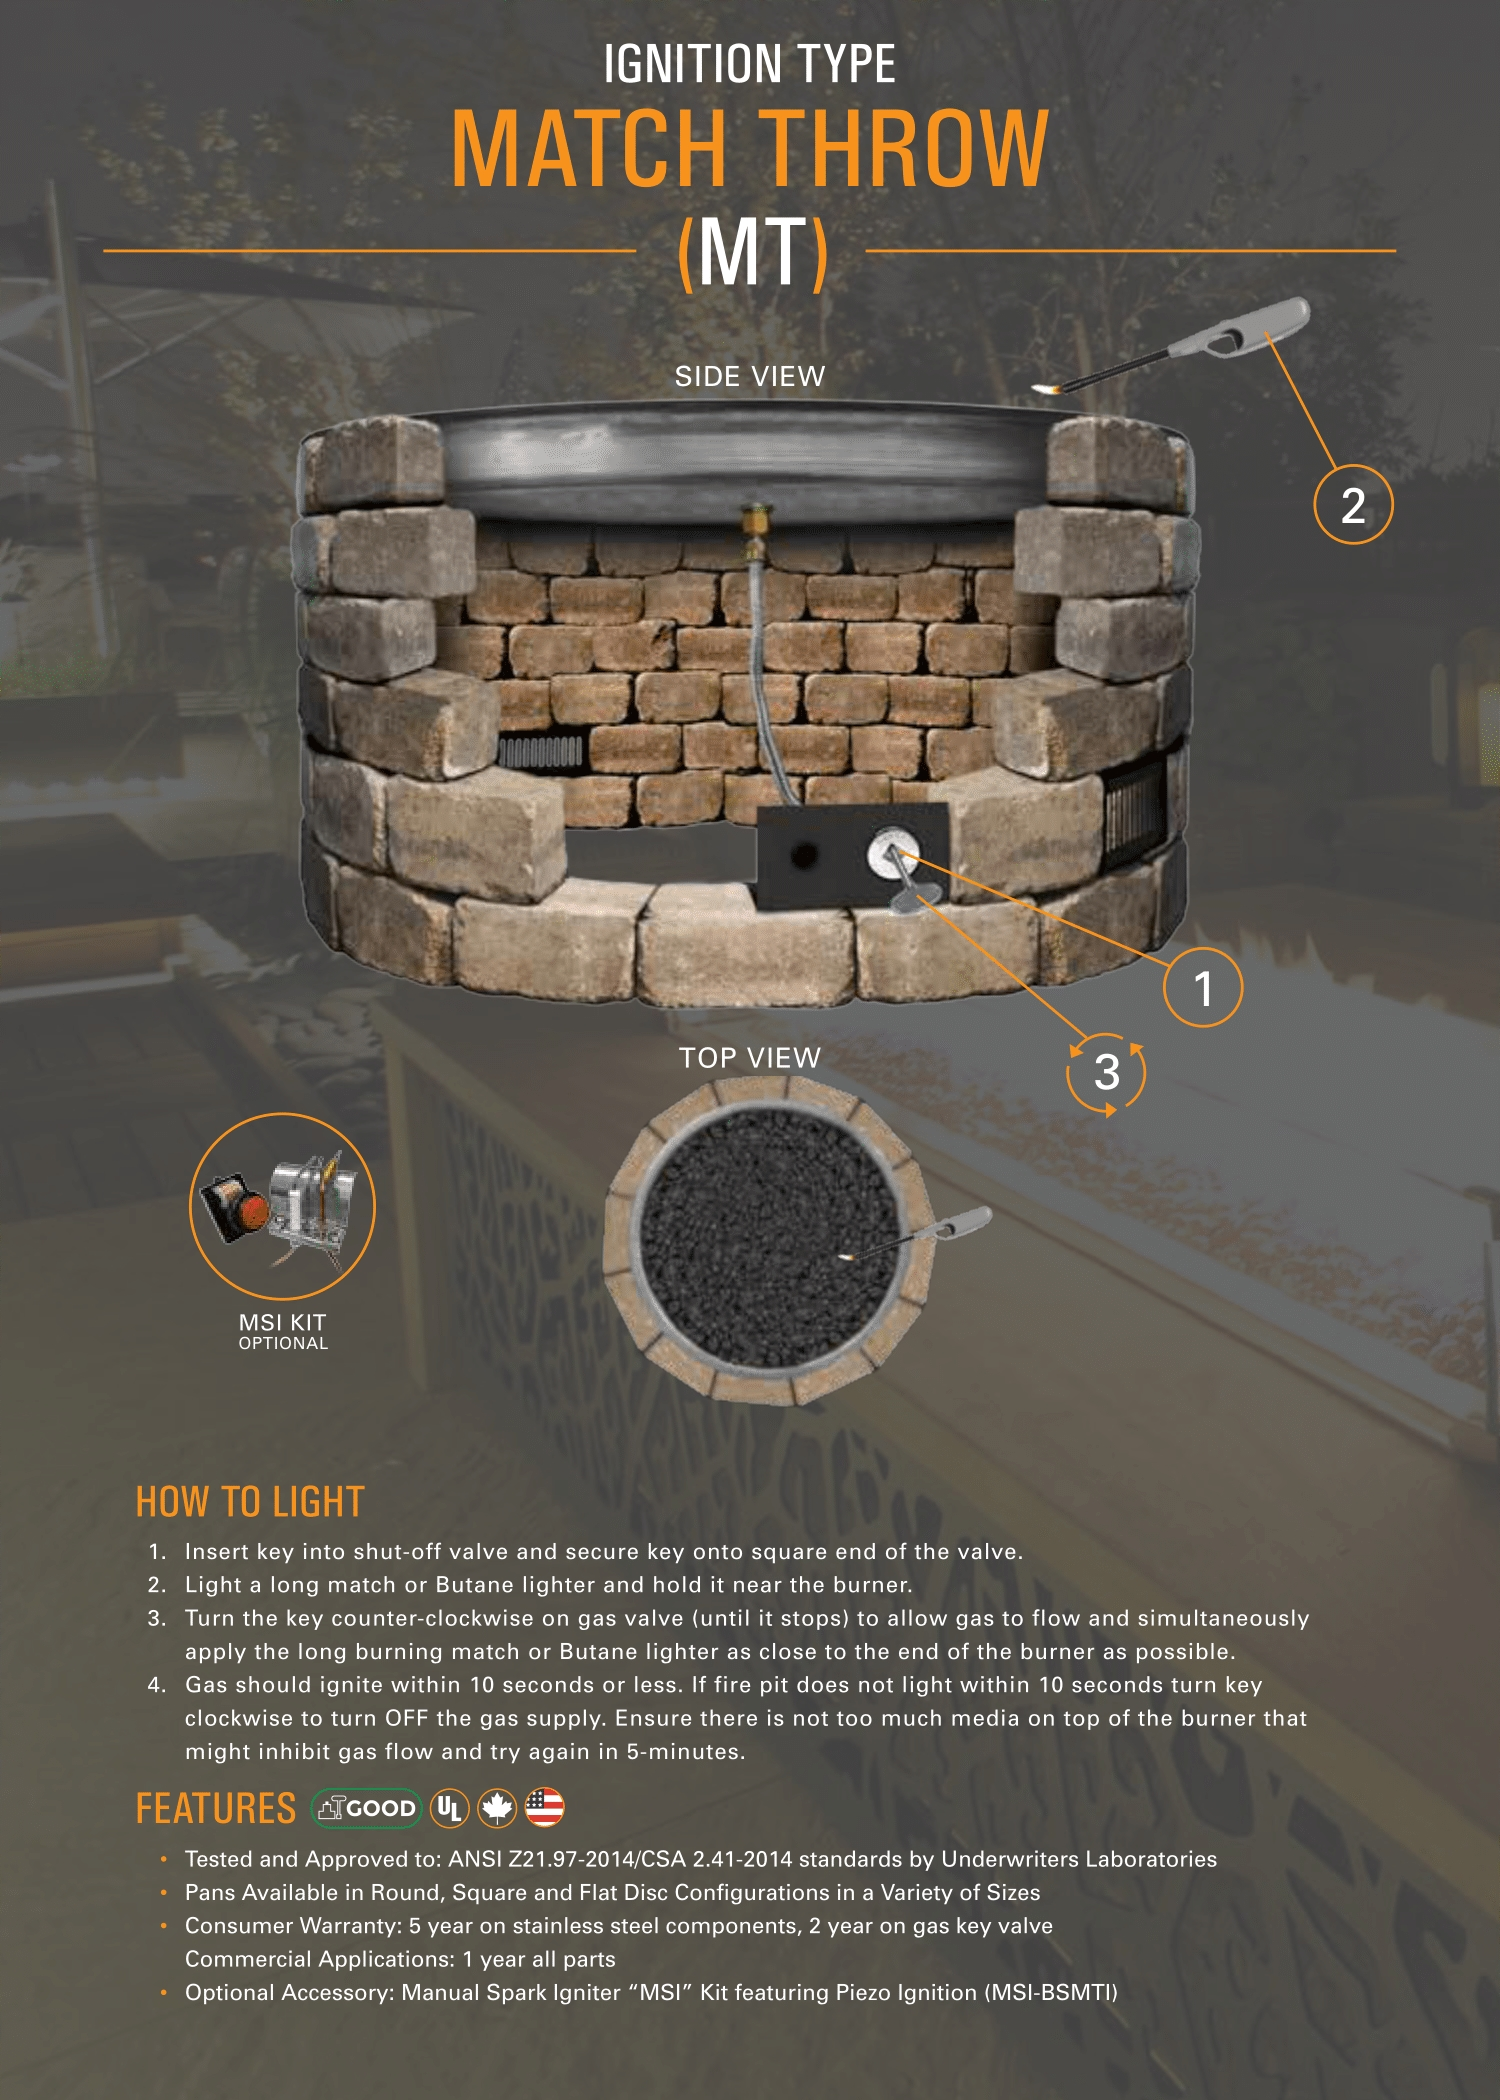 Fire Gear Fire Pit Accessories   Godby Hearth and Home